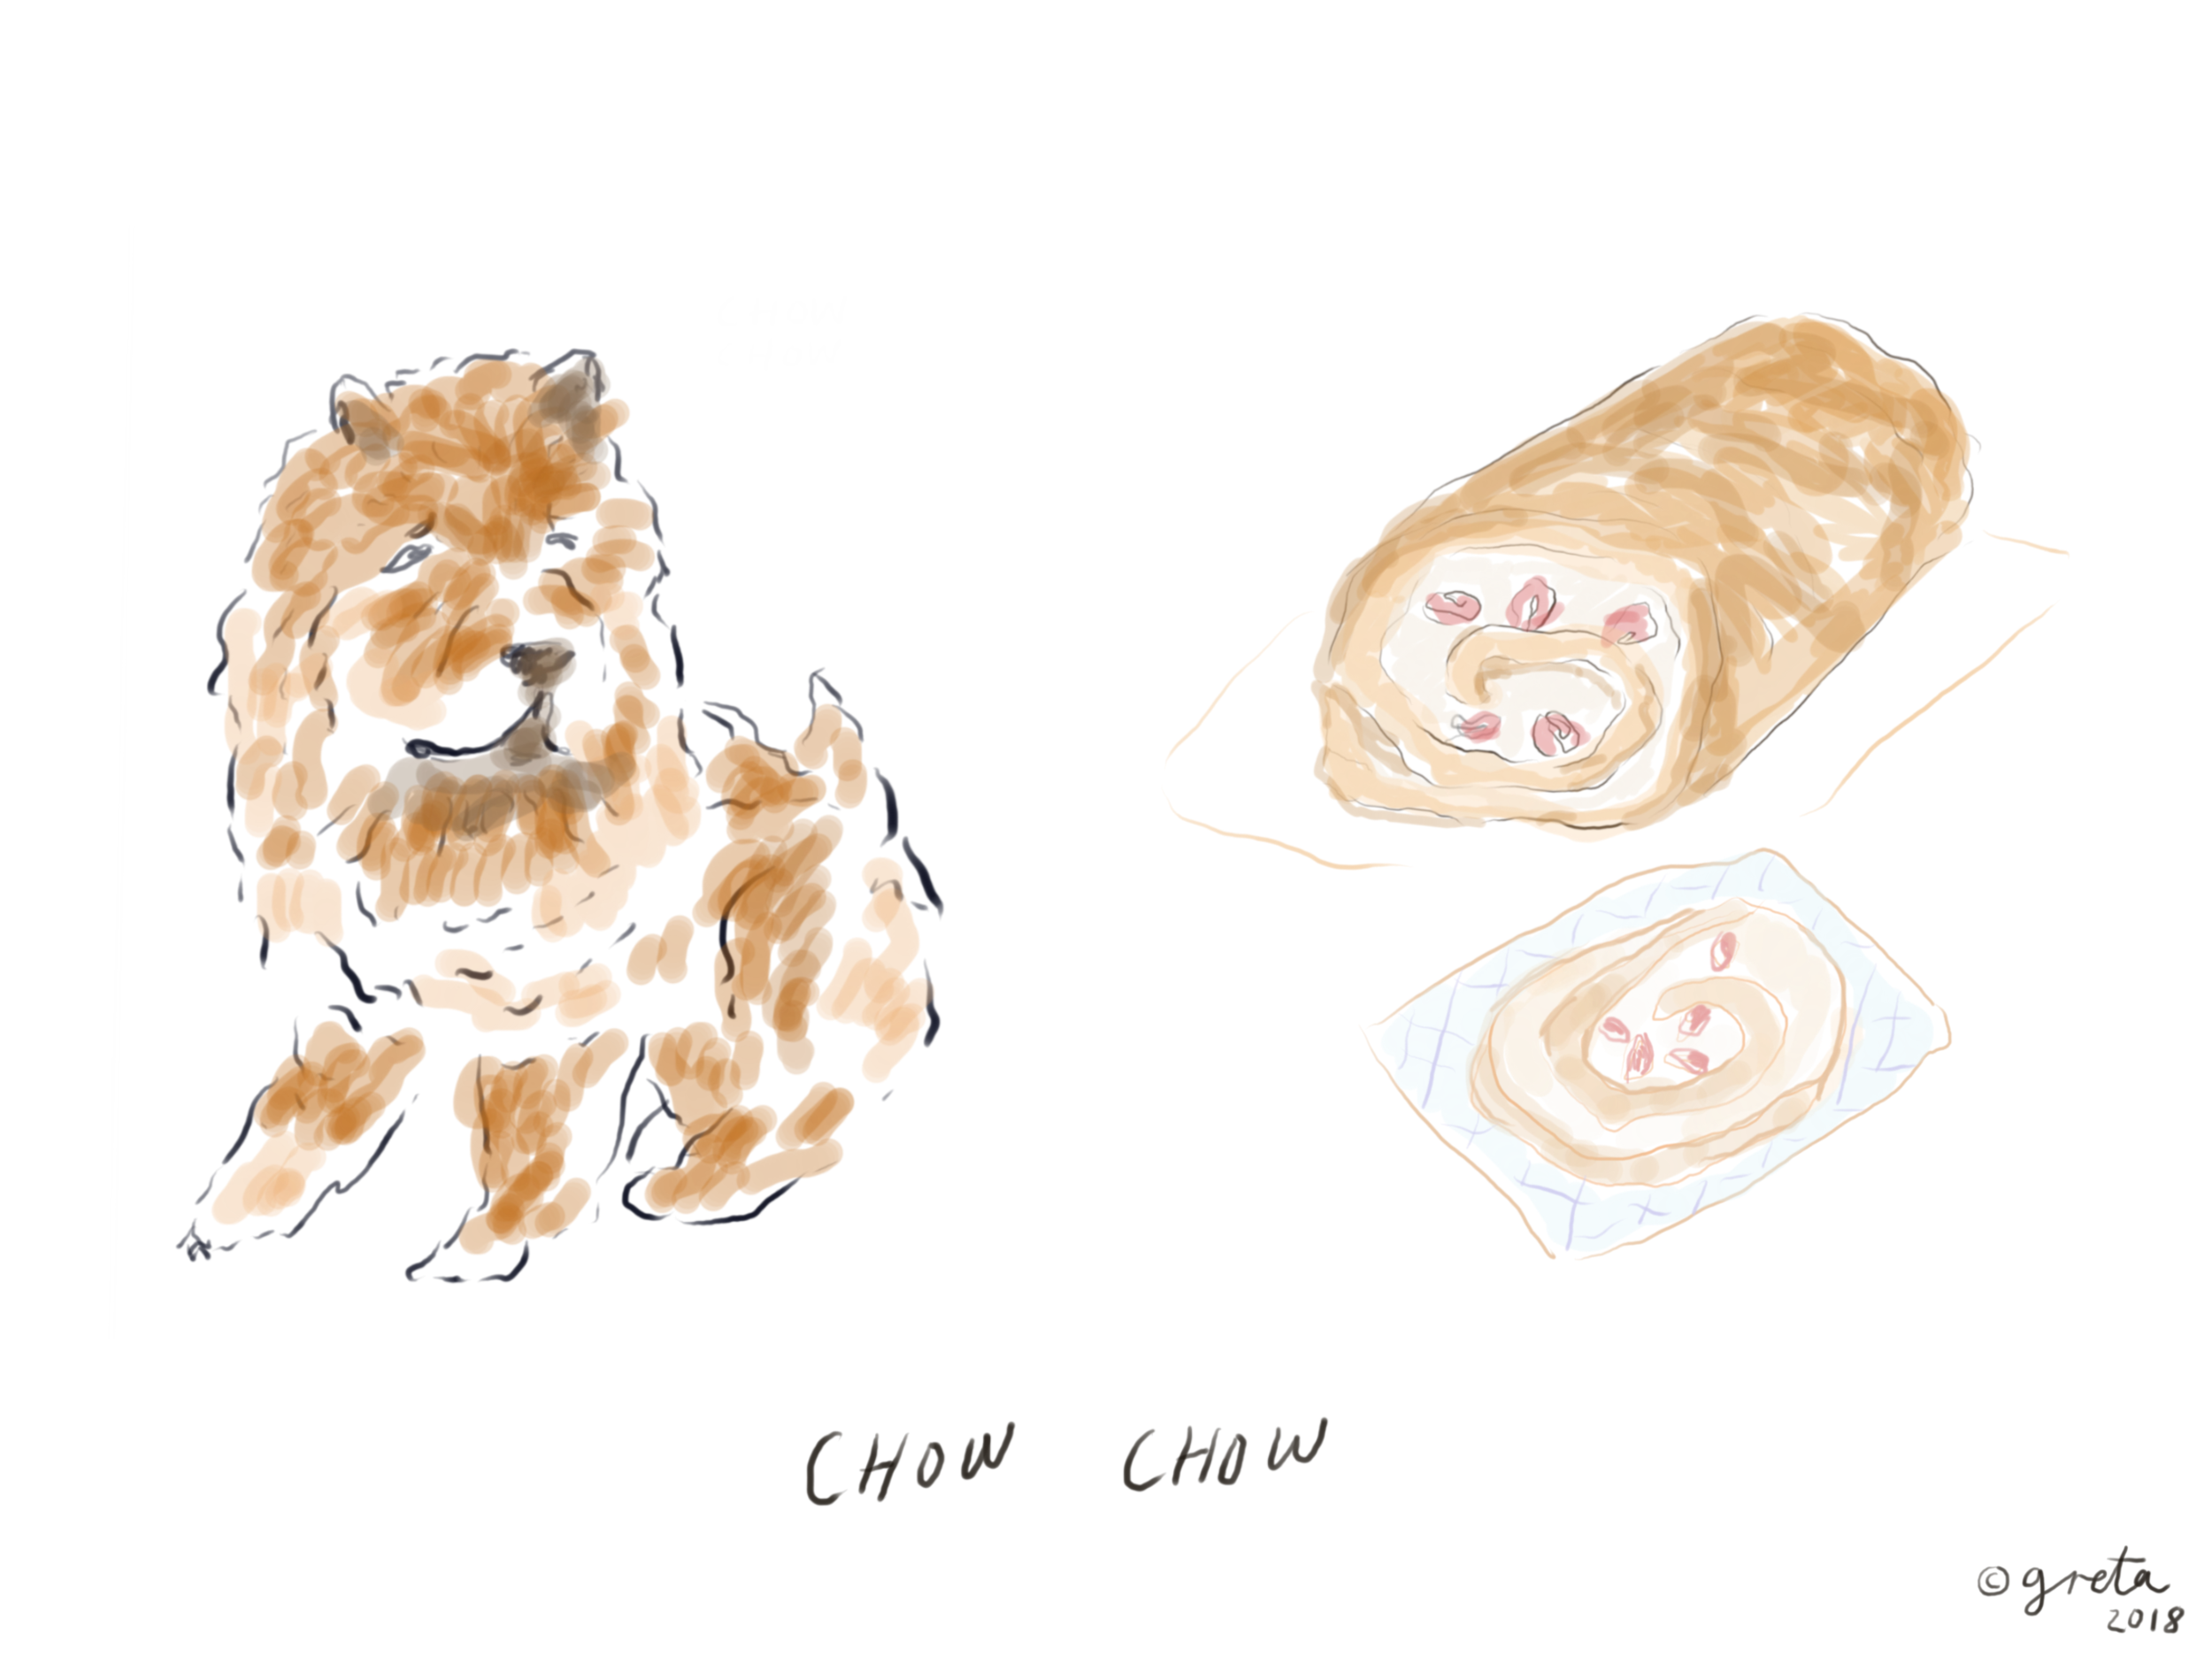 Chow Chow.PNG